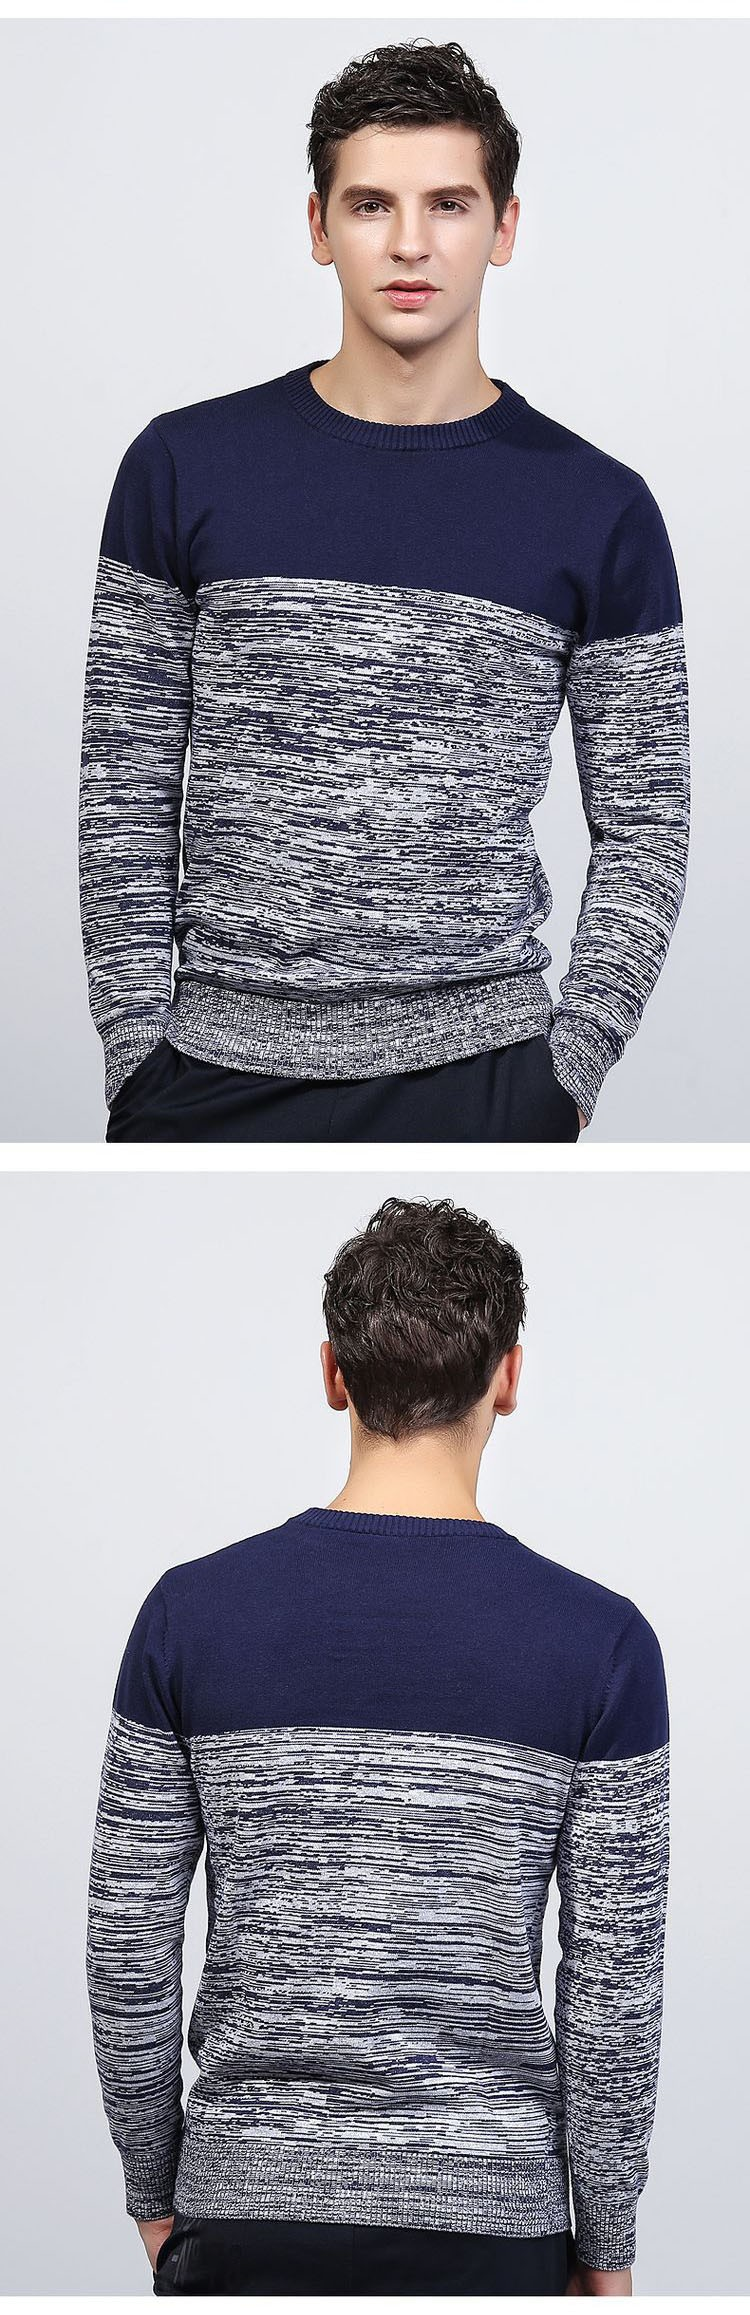 Aolamegs Men Sweater Fashion Hit Color Knitted Pullovers 2017 Spring New Men\'s Classic Casual Slim Fit Knitting Sweter Hombre (8)